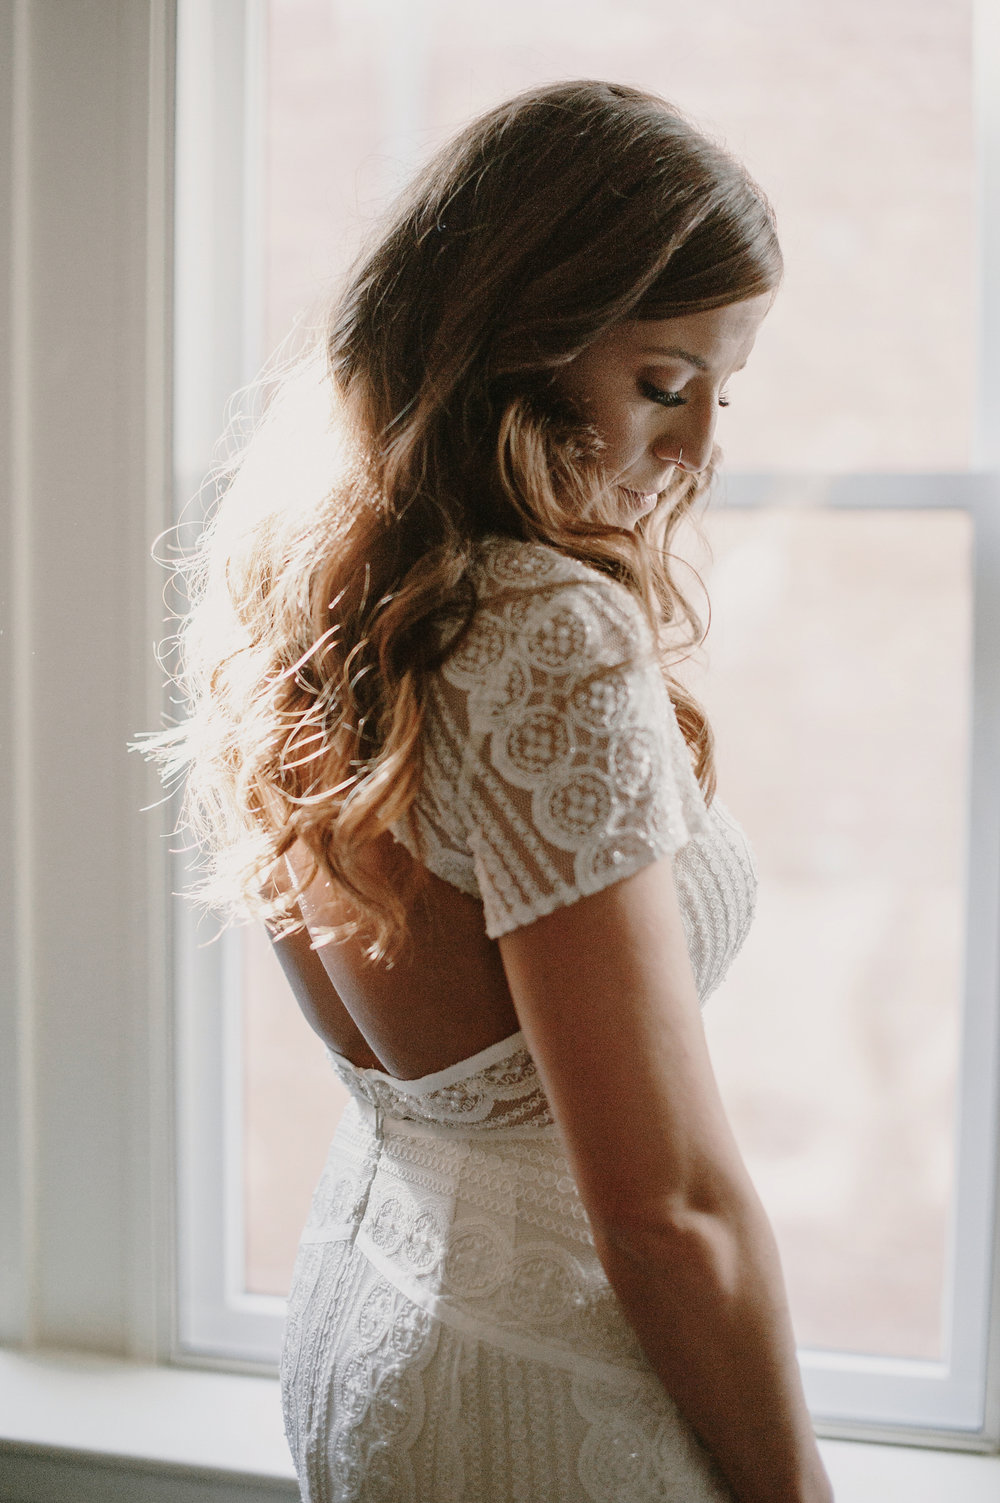 Downtown_Seattle_Wedding_Foundry_Sinclair_Moore008.JPG